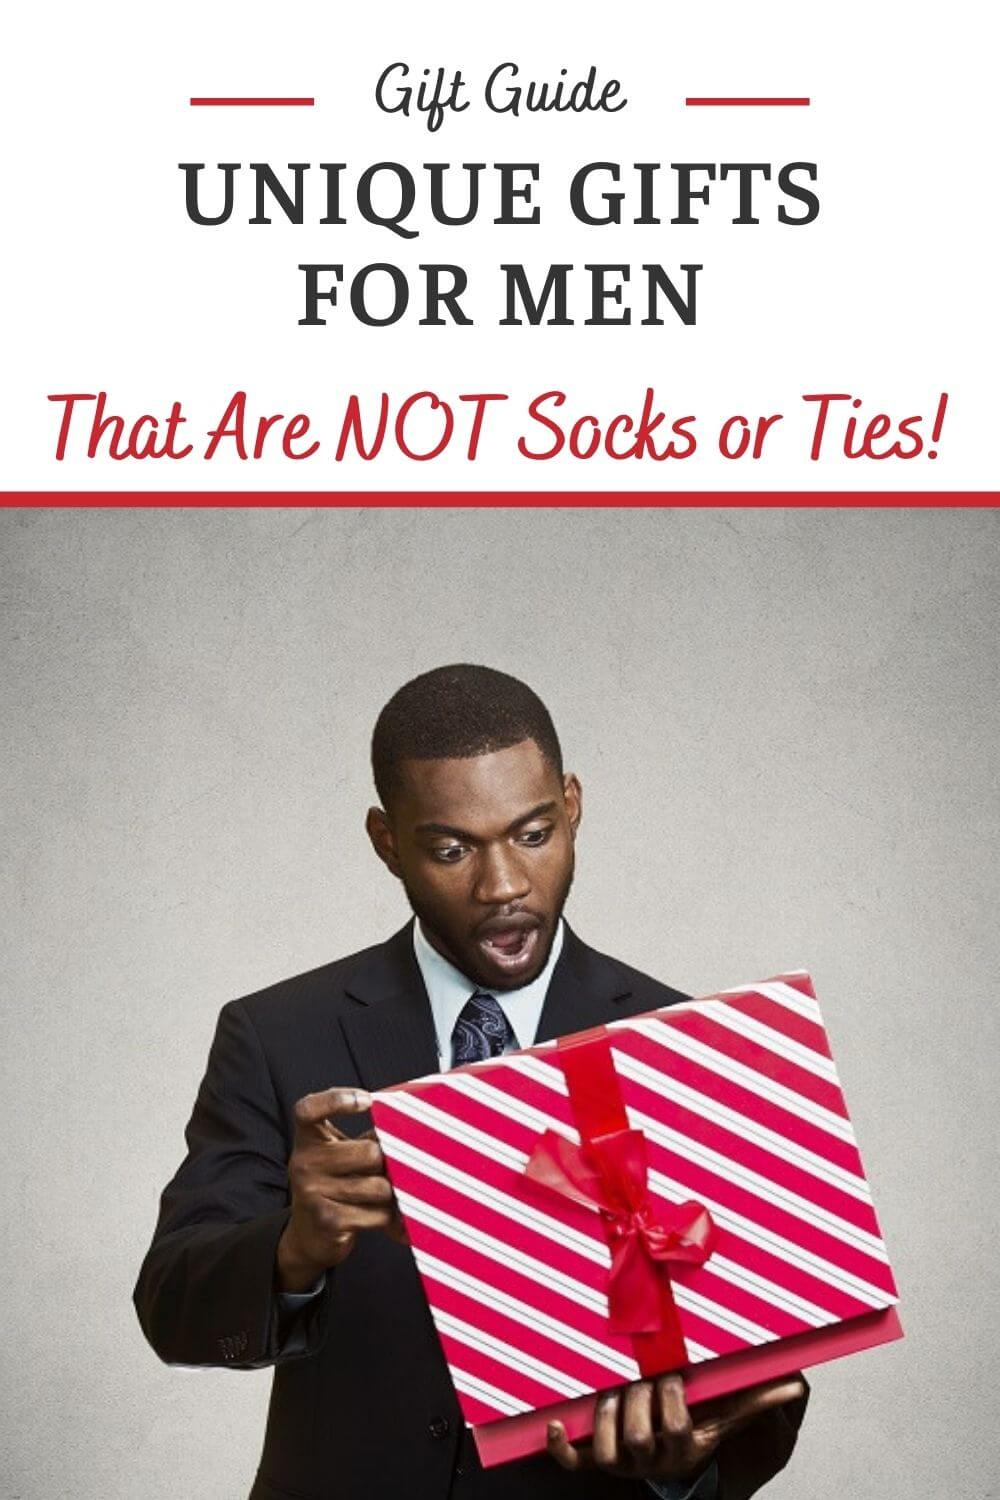 Unique Gifts for Men - Out of The Box Gift Ideas for Him